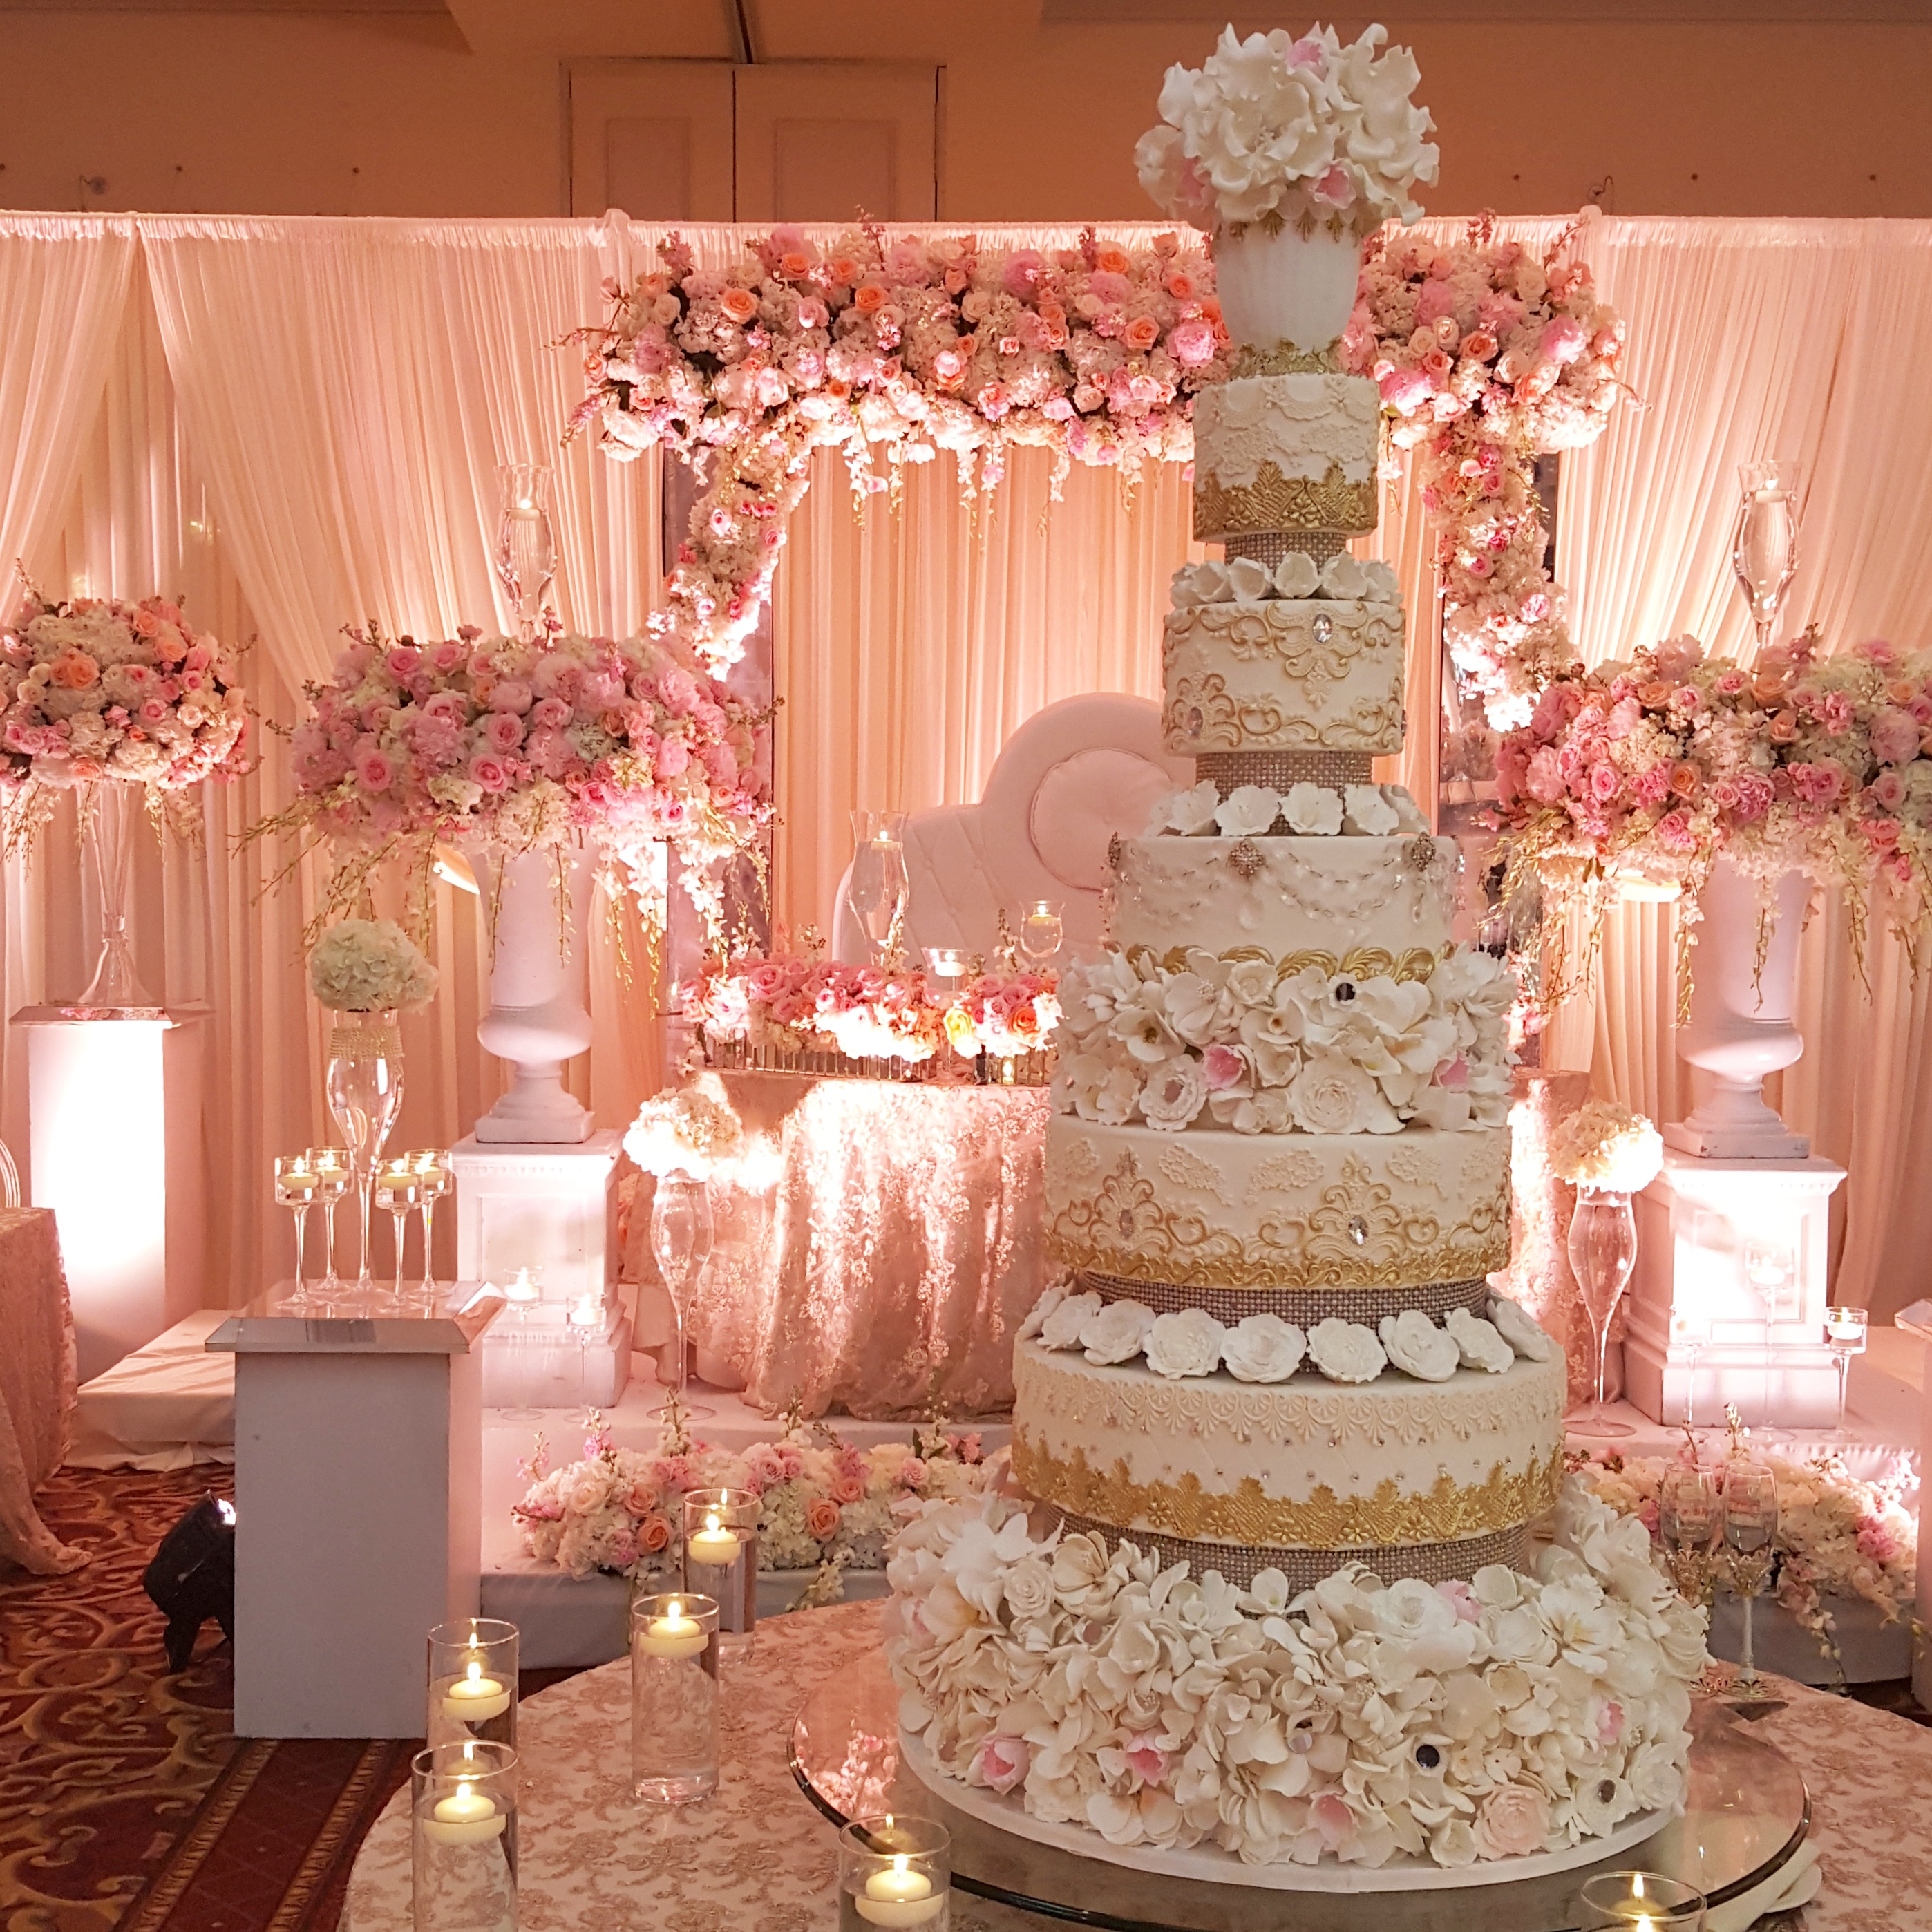 Light pink wedding cake with gold accents and sugar flowers